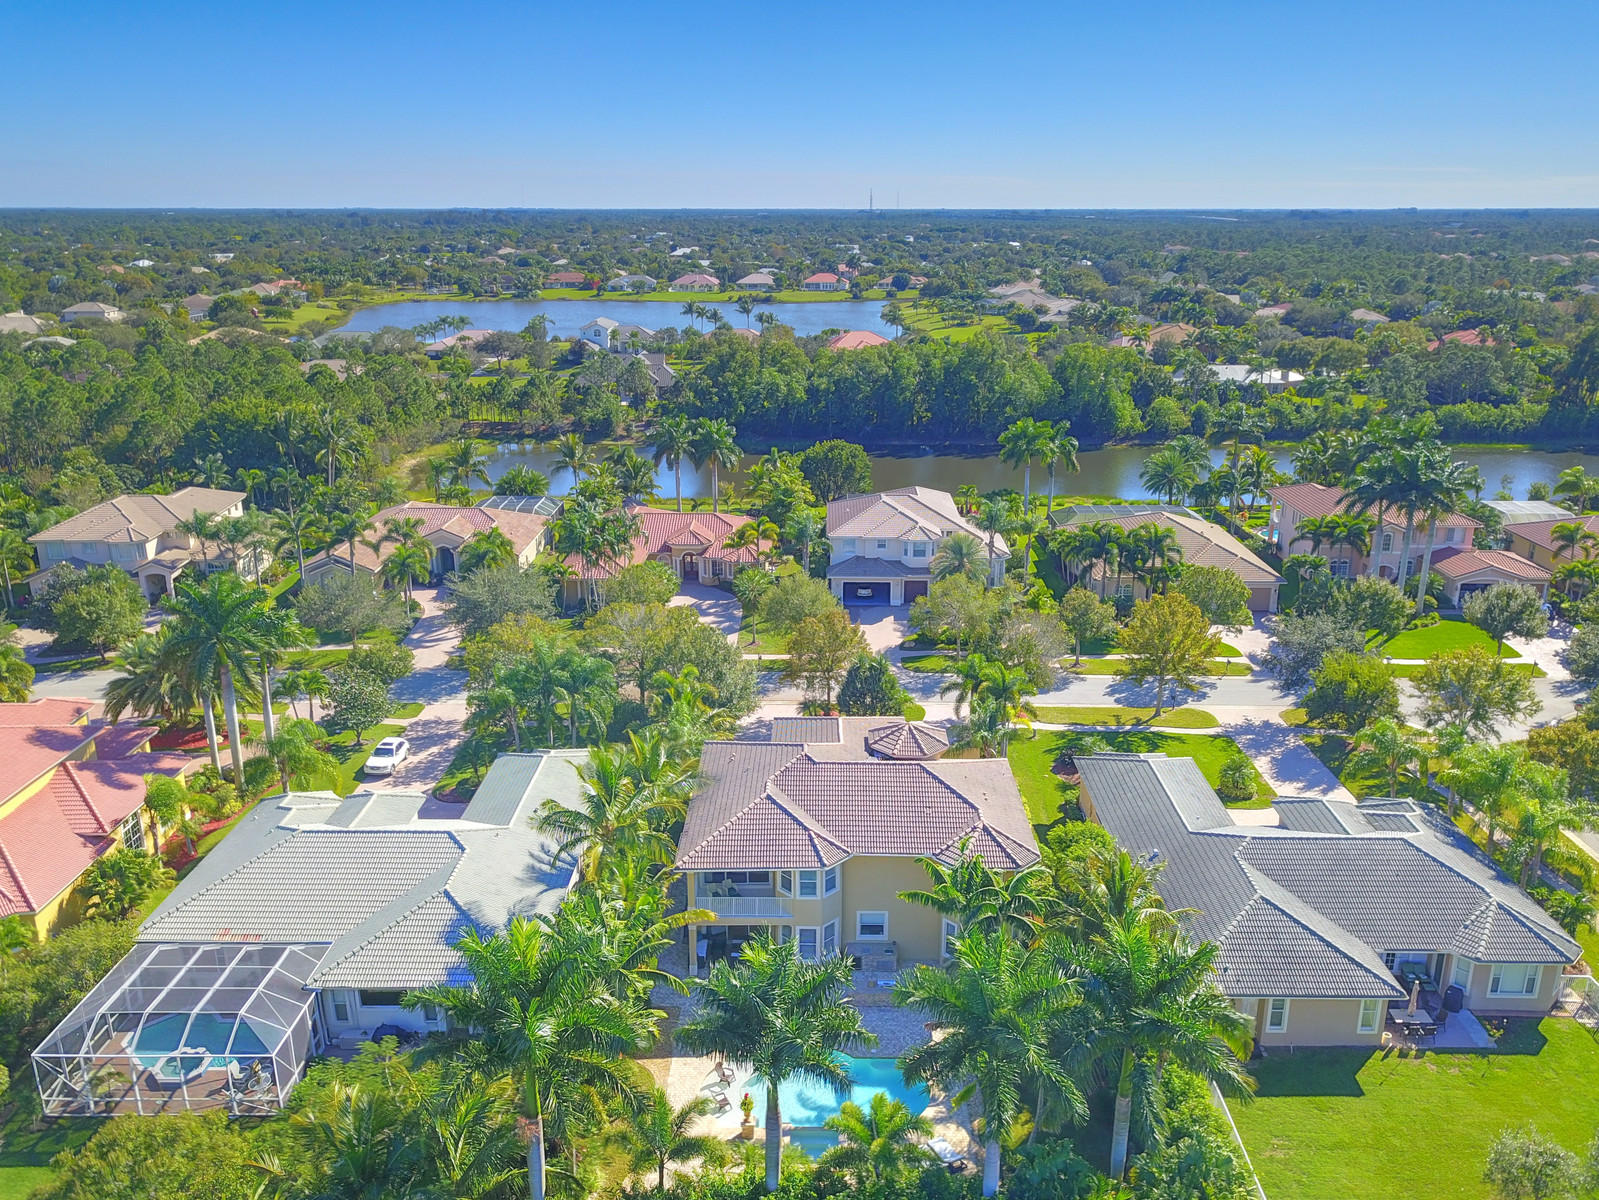 HAMMOCK CREEK PALM CITY REAL ESTATE